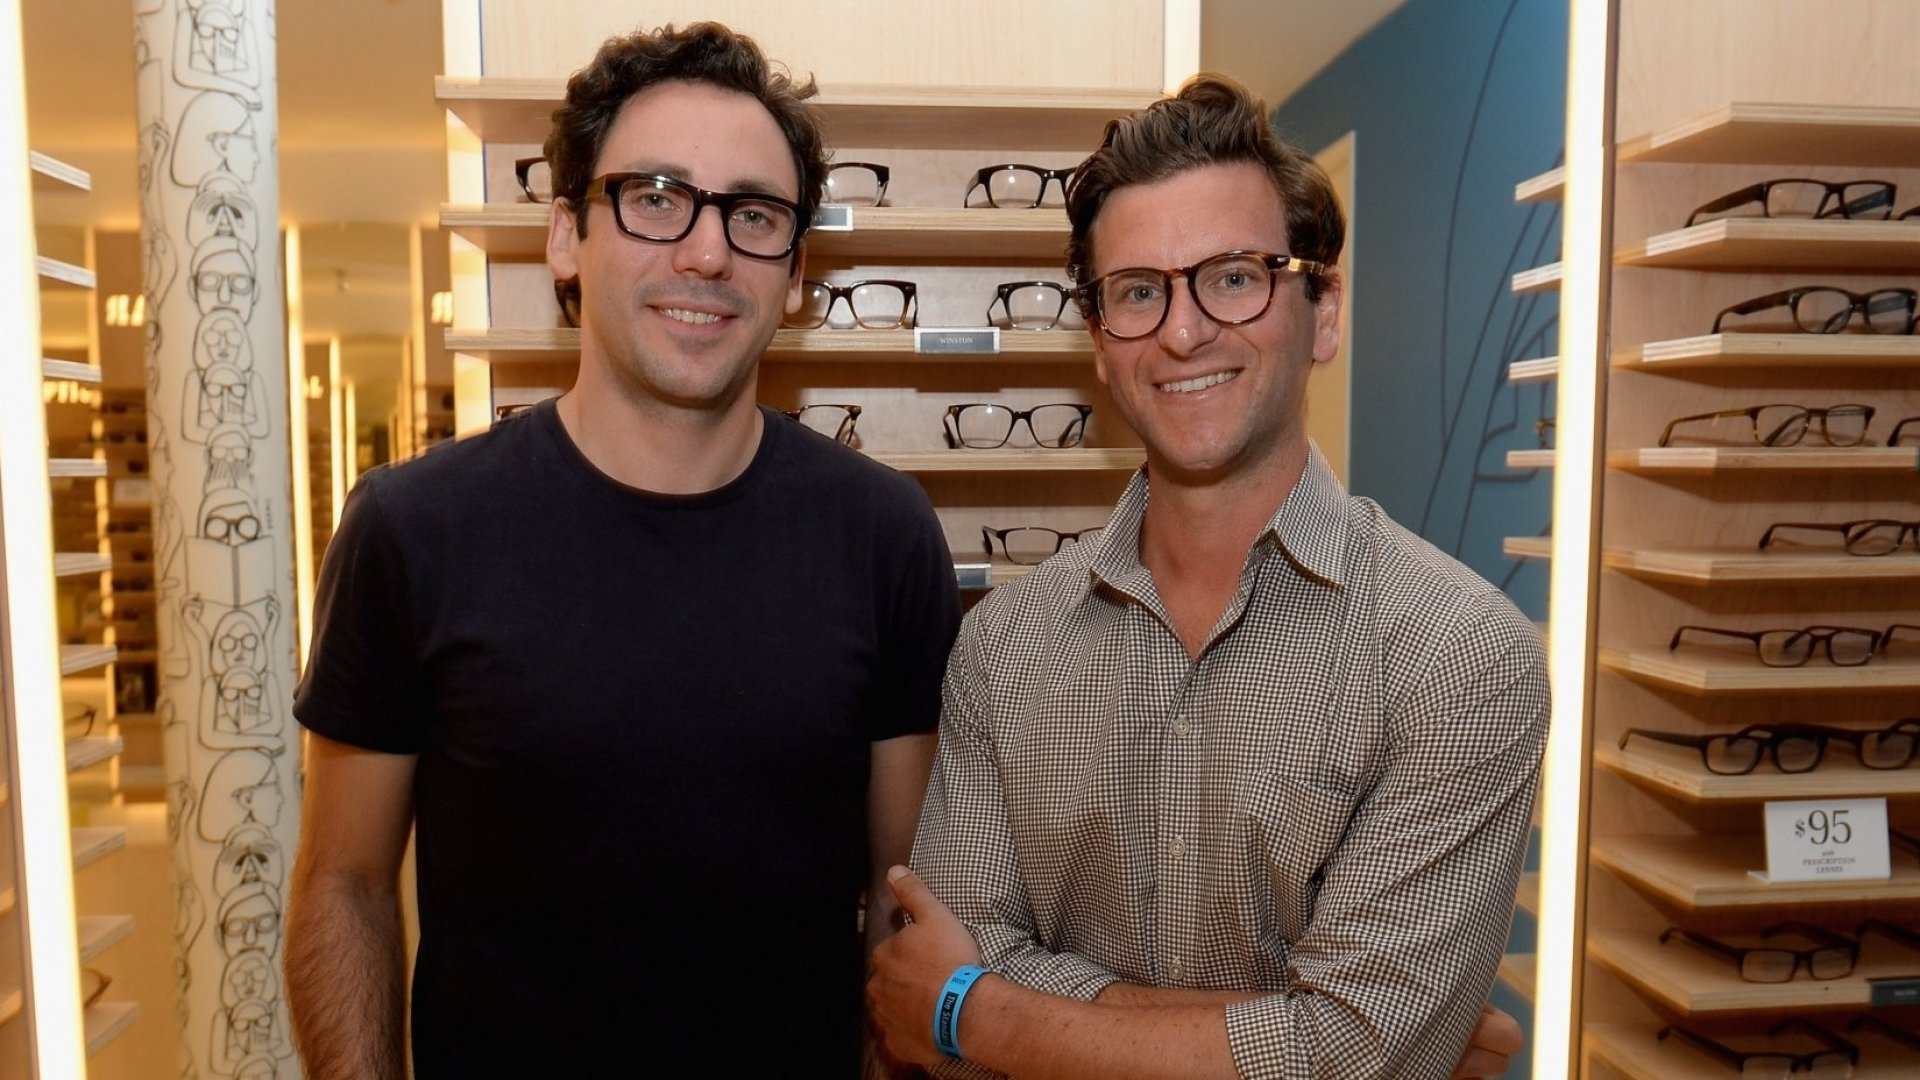 How Warby Parker is Using Physical Retail and Telemedicine to Grow the Company